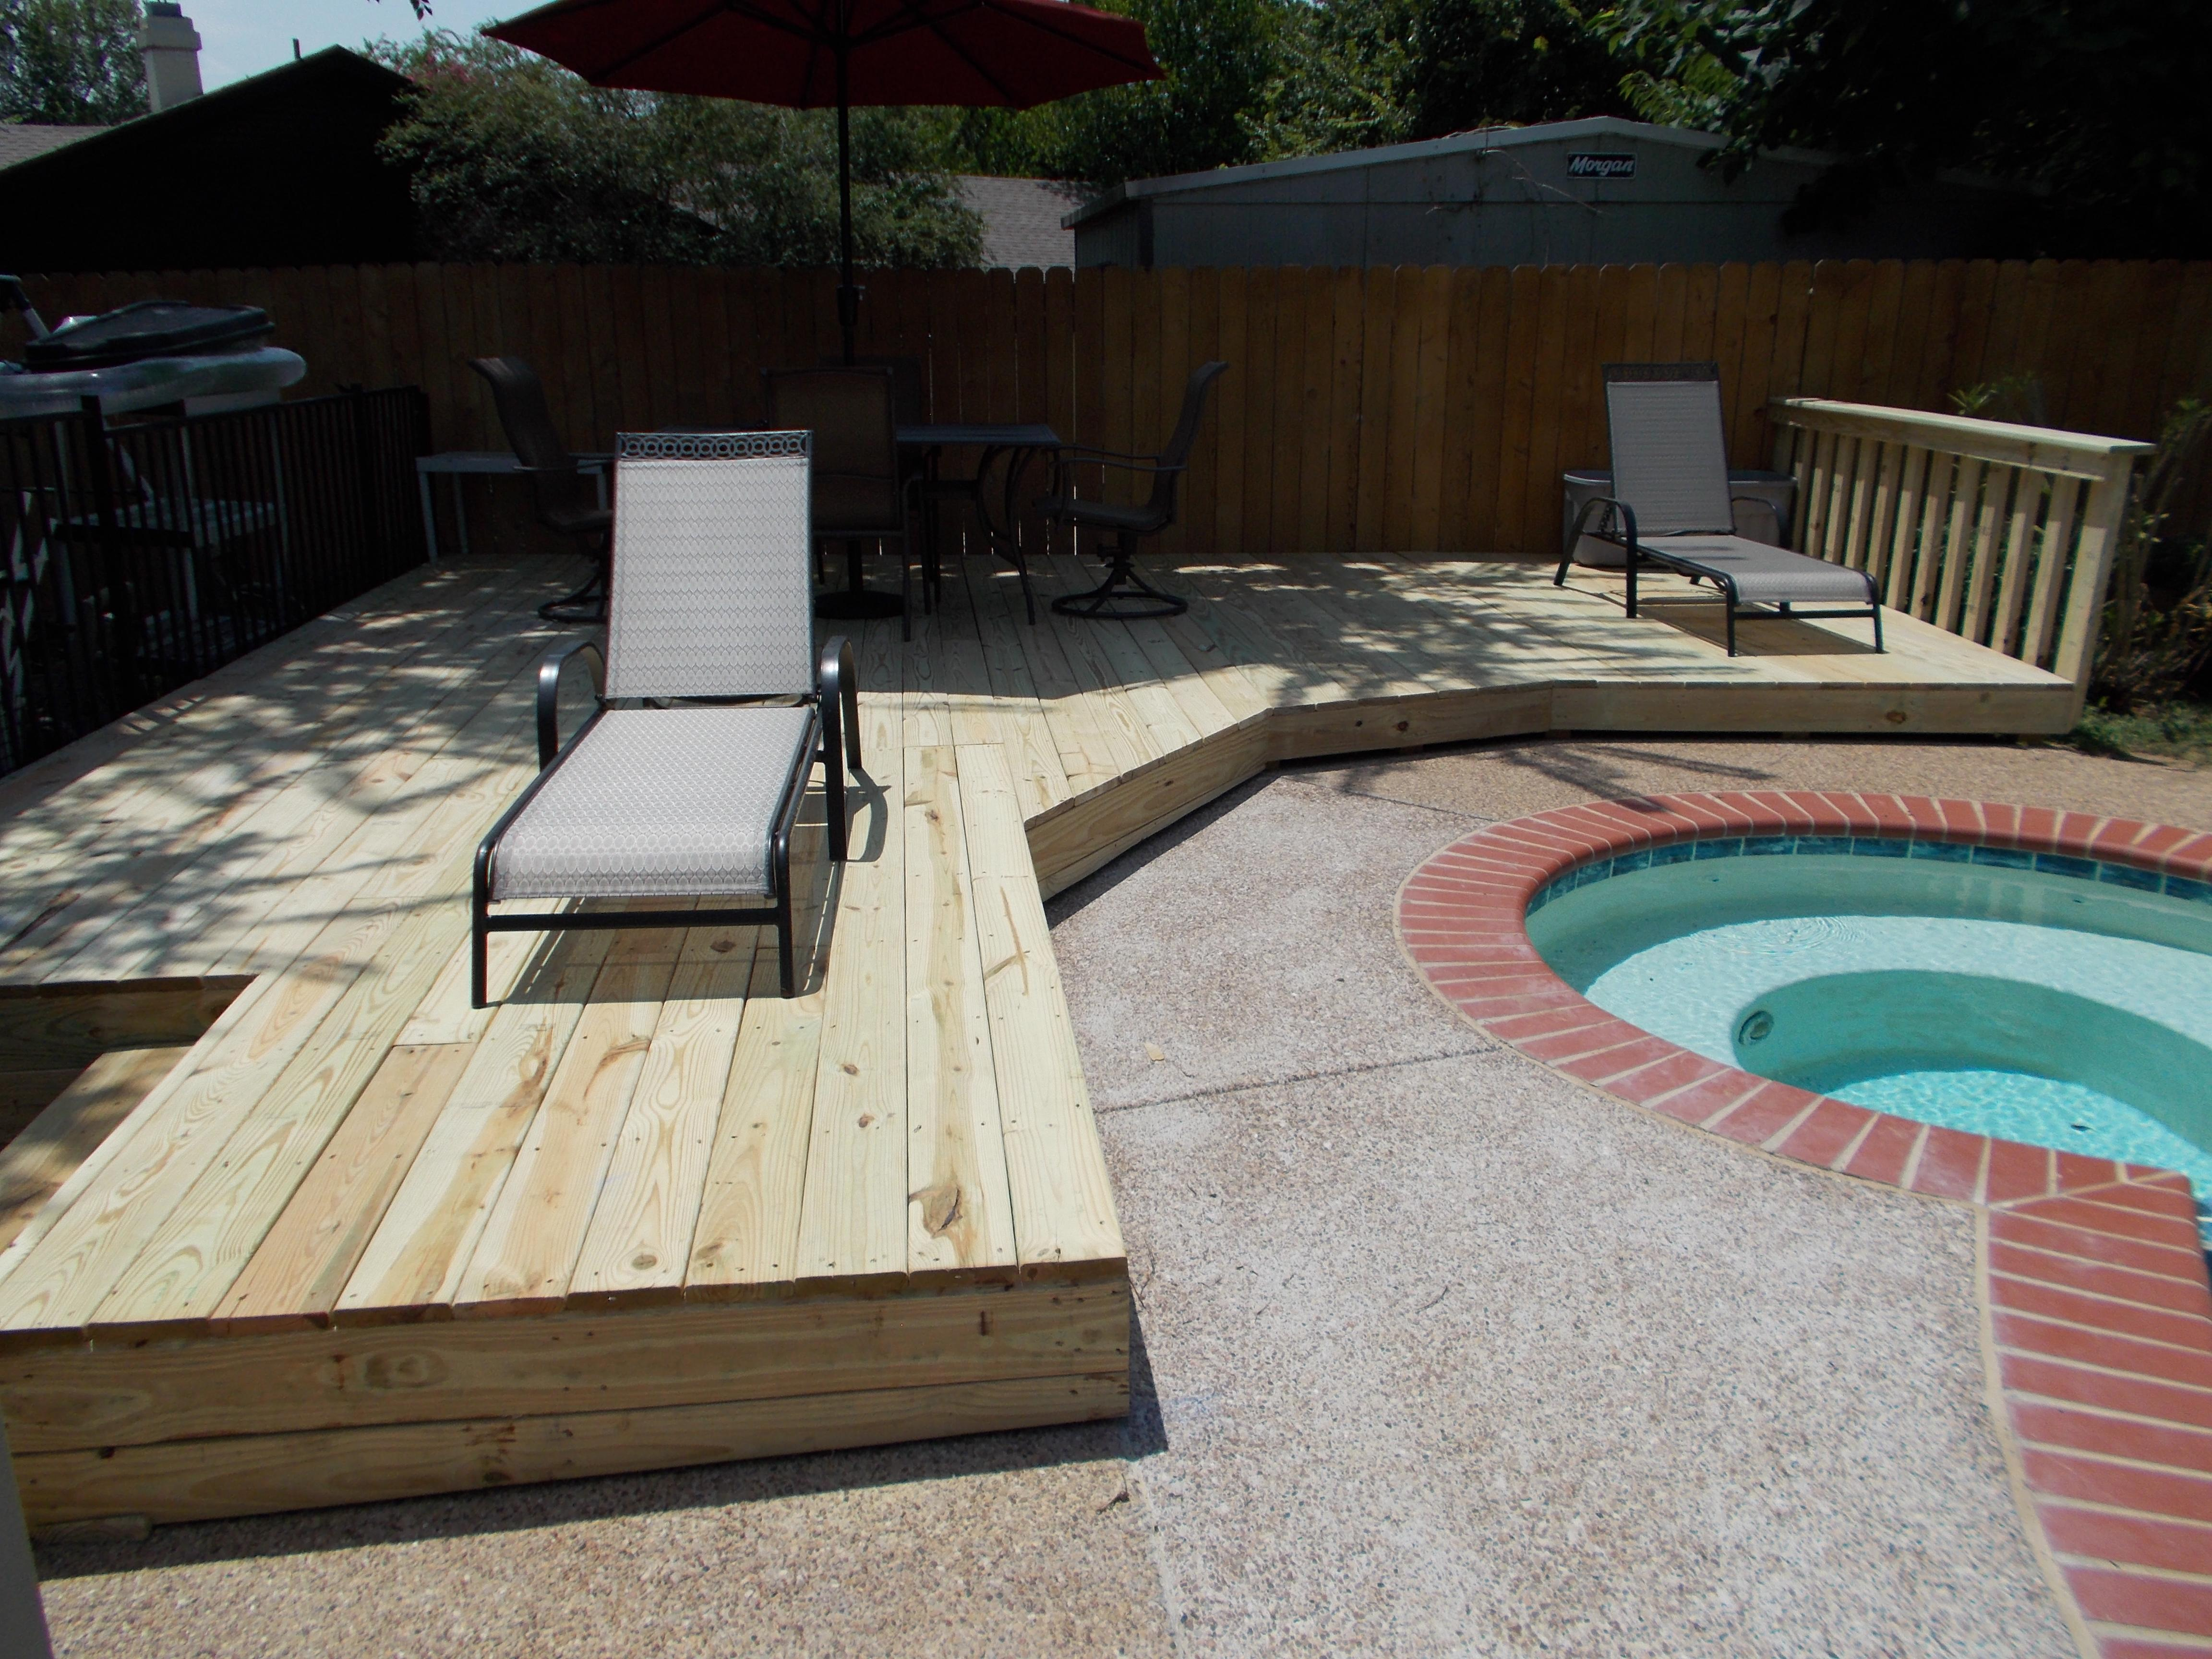 Our Customer wanted us to custom design and build a sun bathing pool for his home.  He loved it!